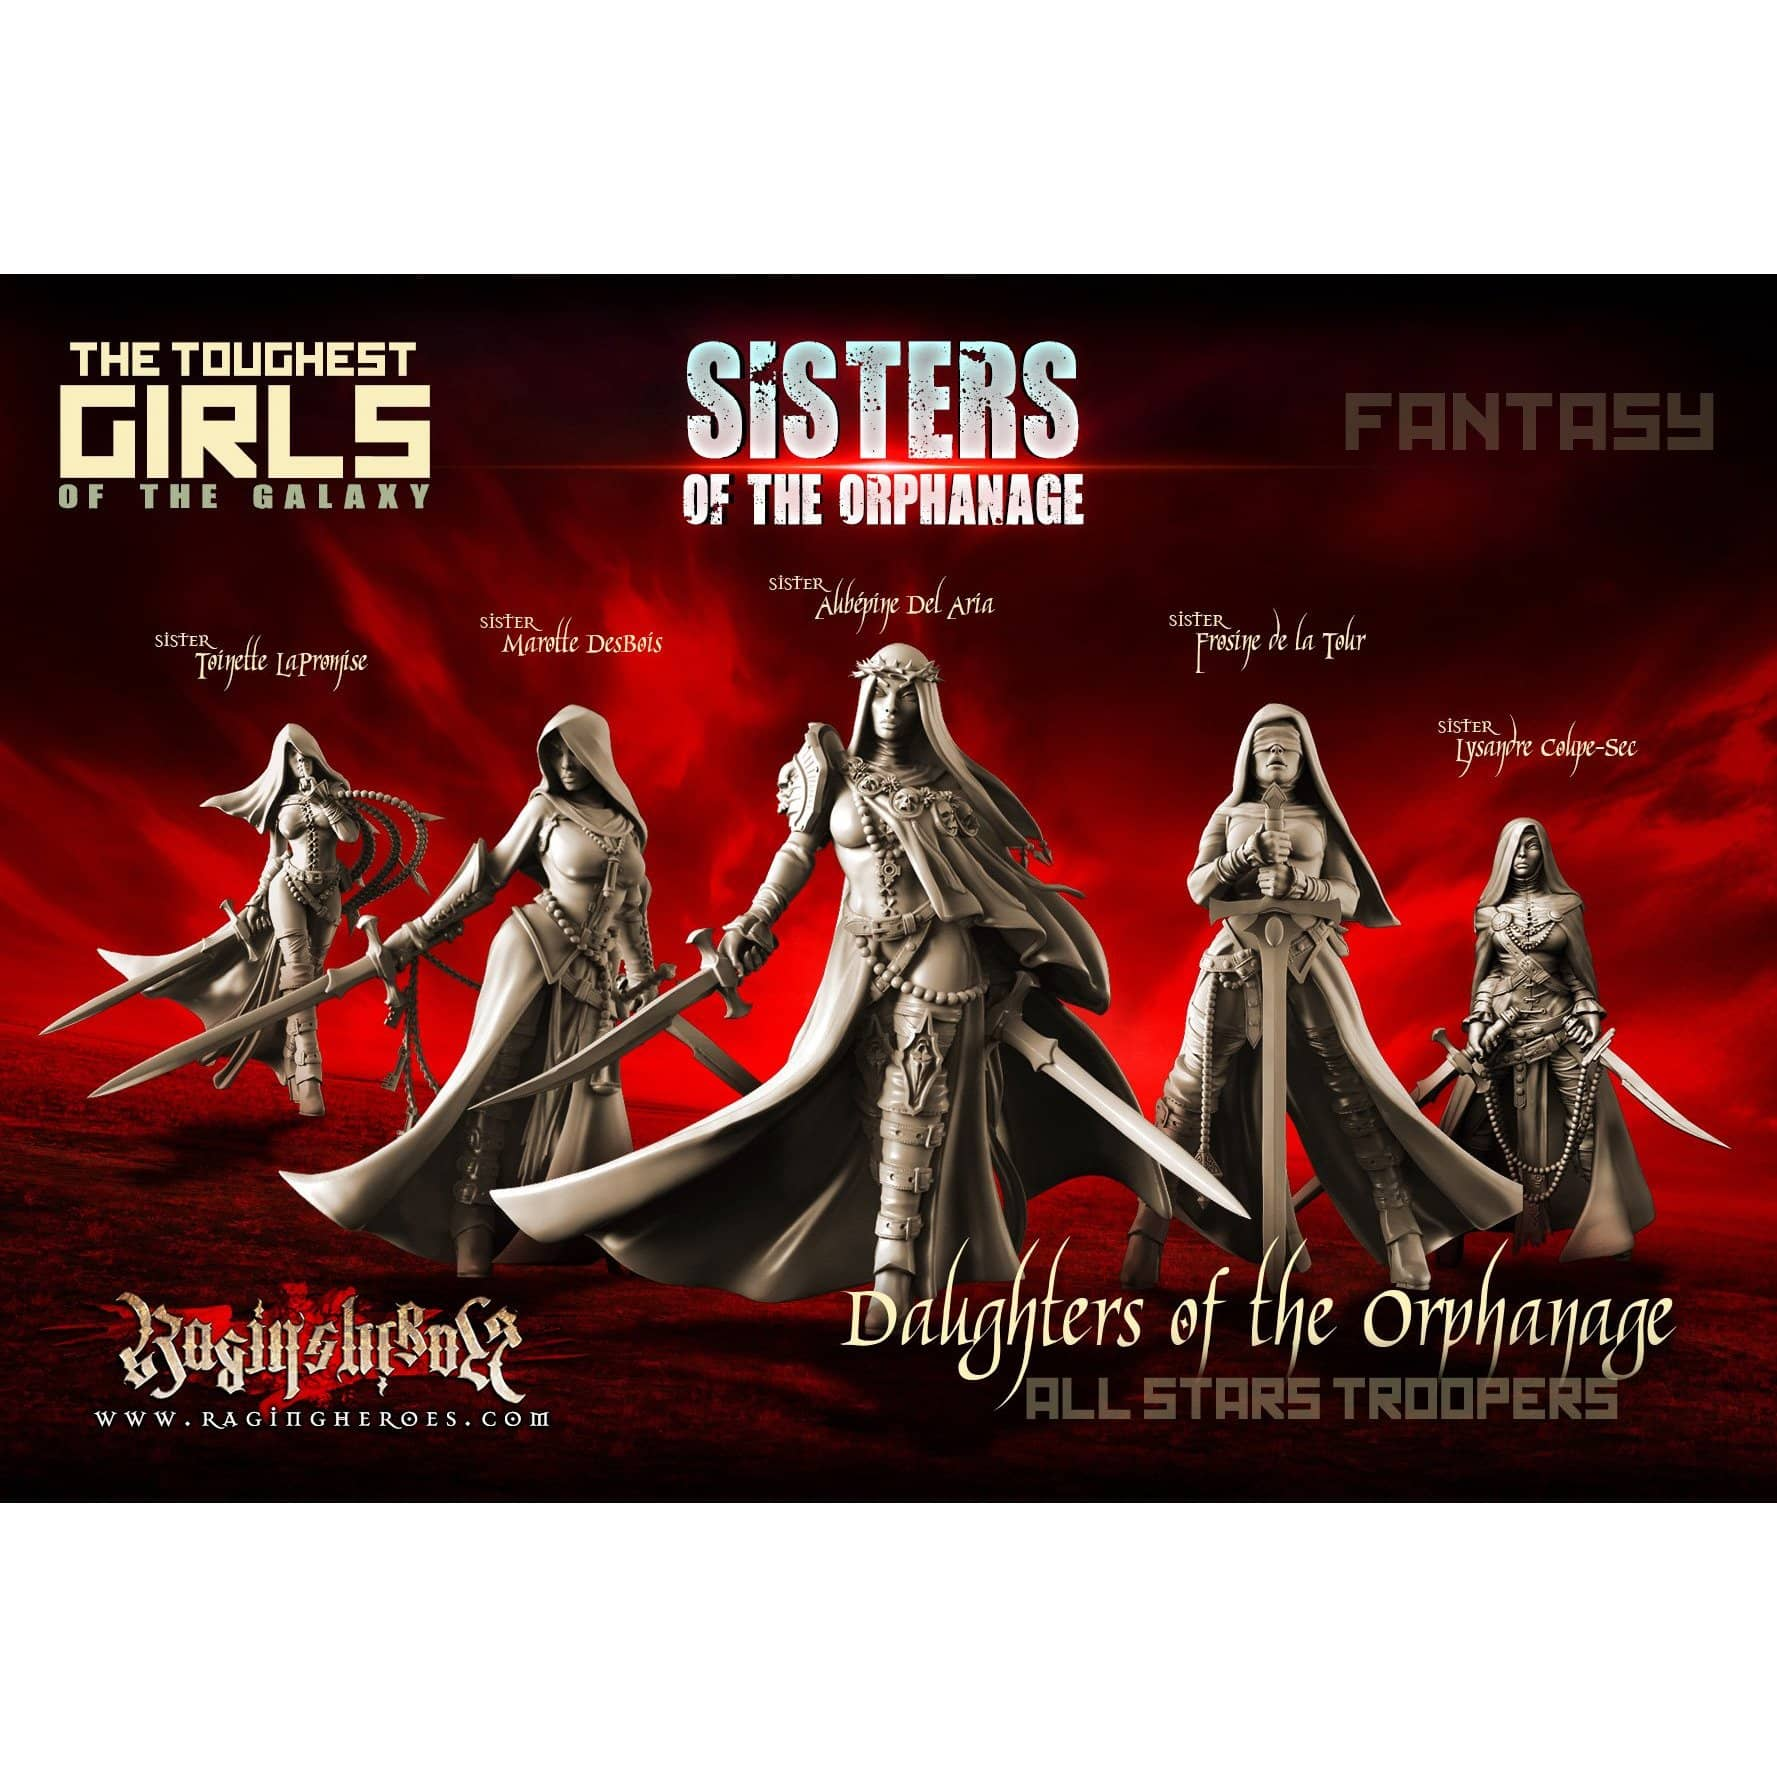 Daughters of the Orphanage - All Stars Troopers (Sisters - FANTASY) - Raging Heroes